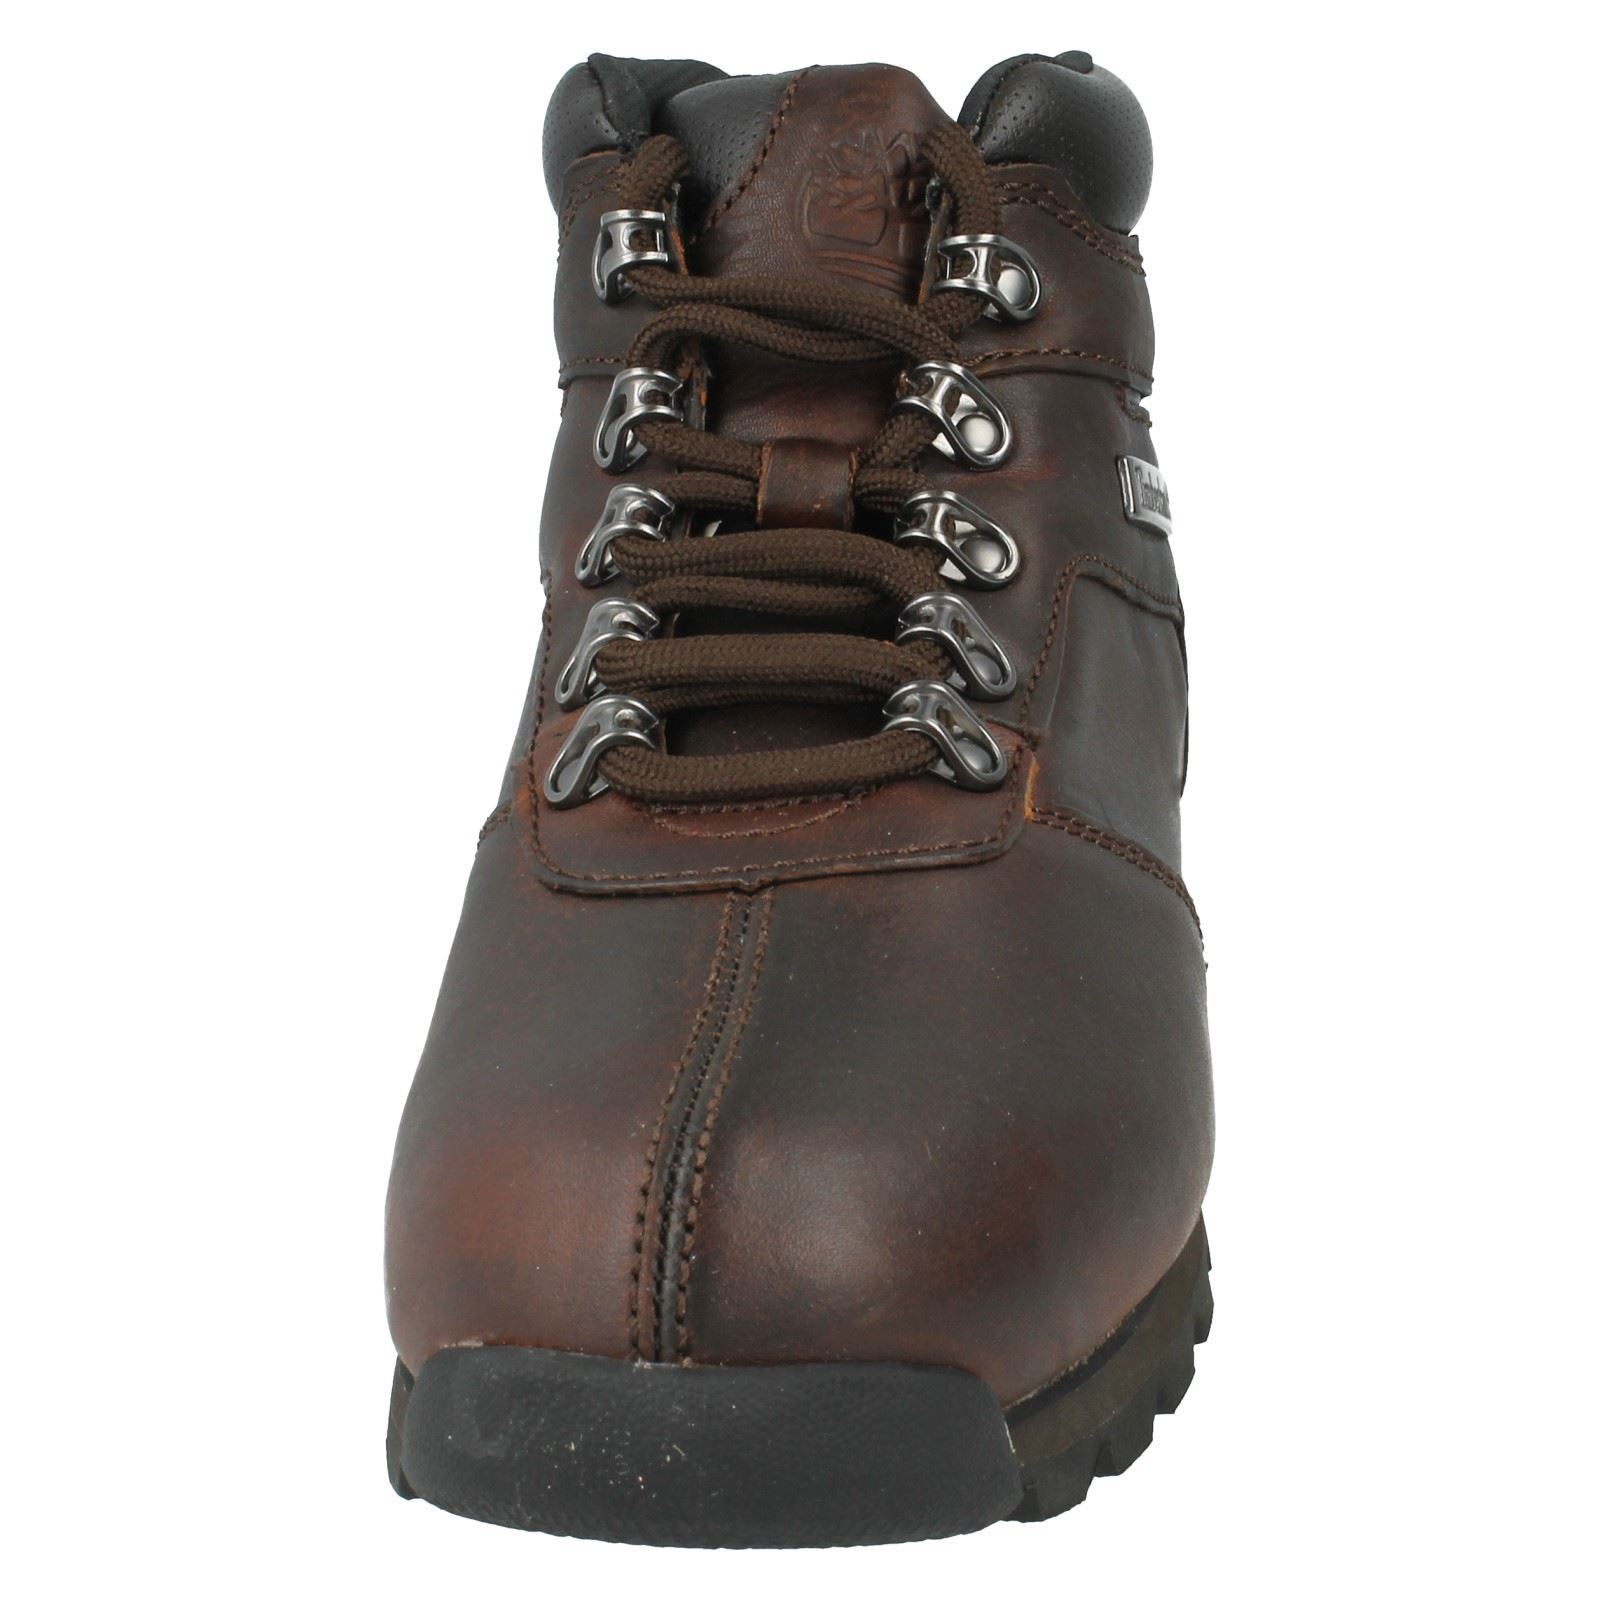 2 Timberland Men's Splitrock Brown Lace Up Boots A11wh Walking Ankle 7qq0dw